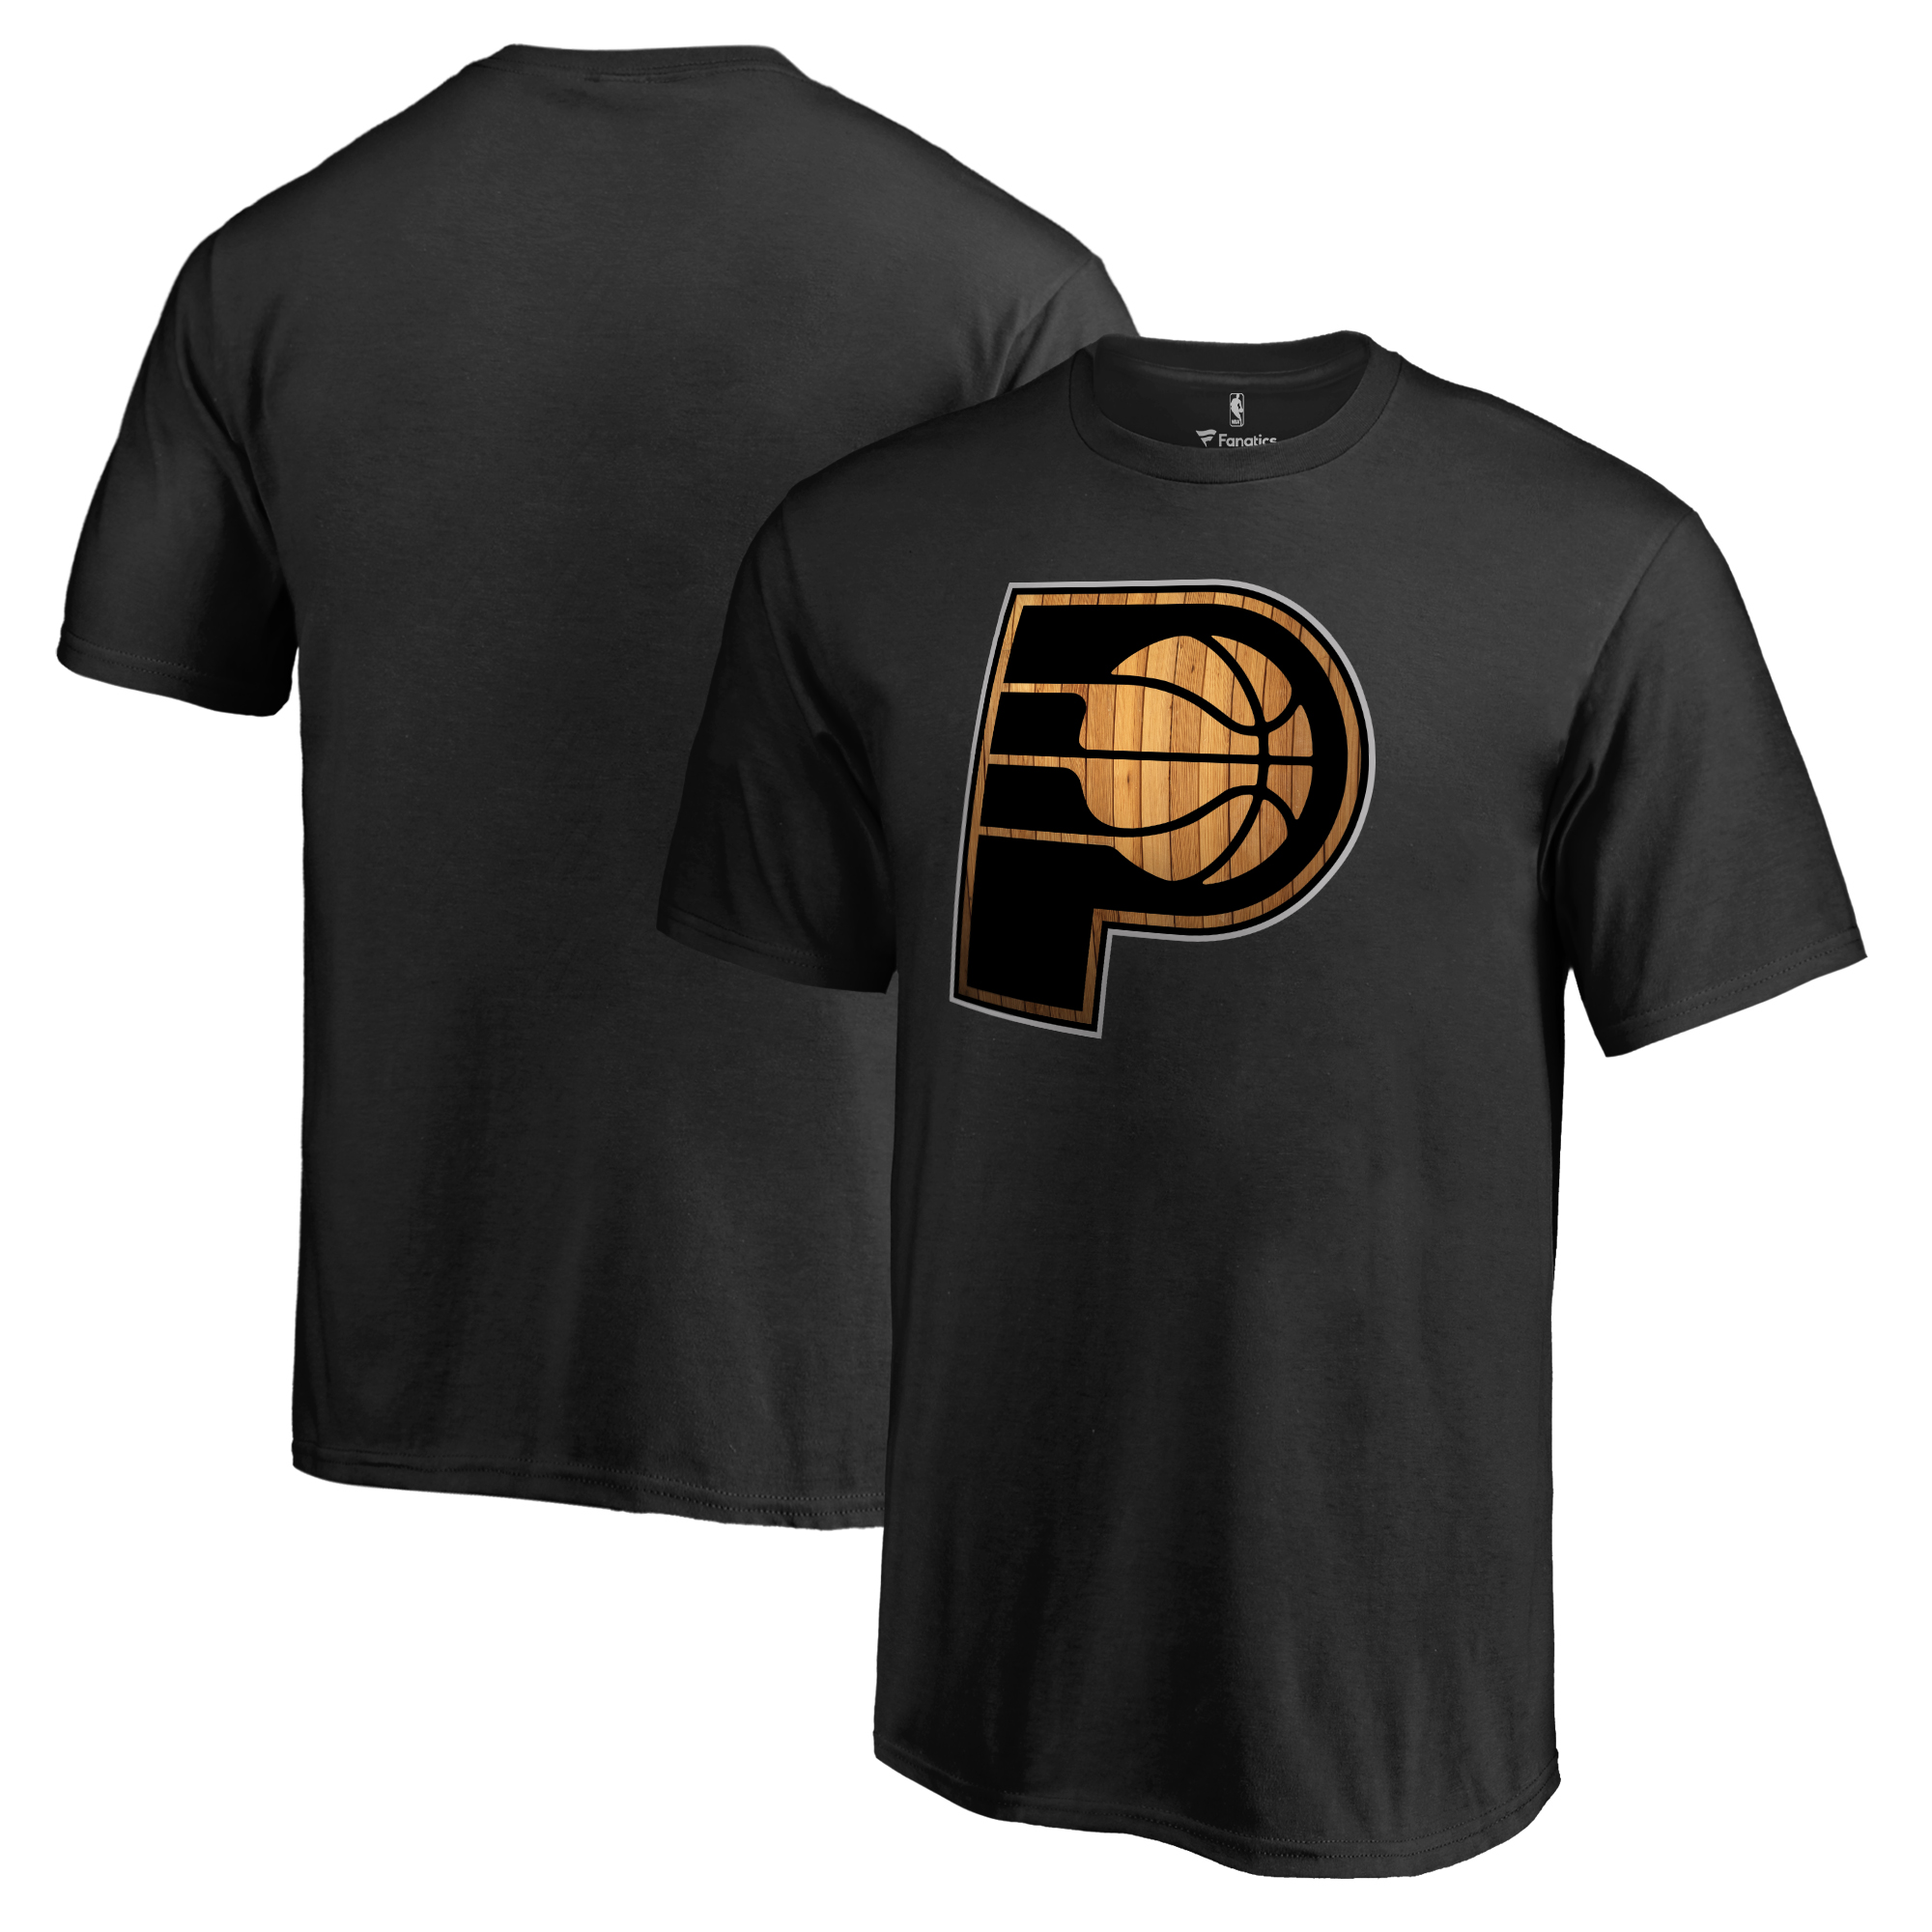 Indiana Pacers Youth Hardwood T-Shirt - Black